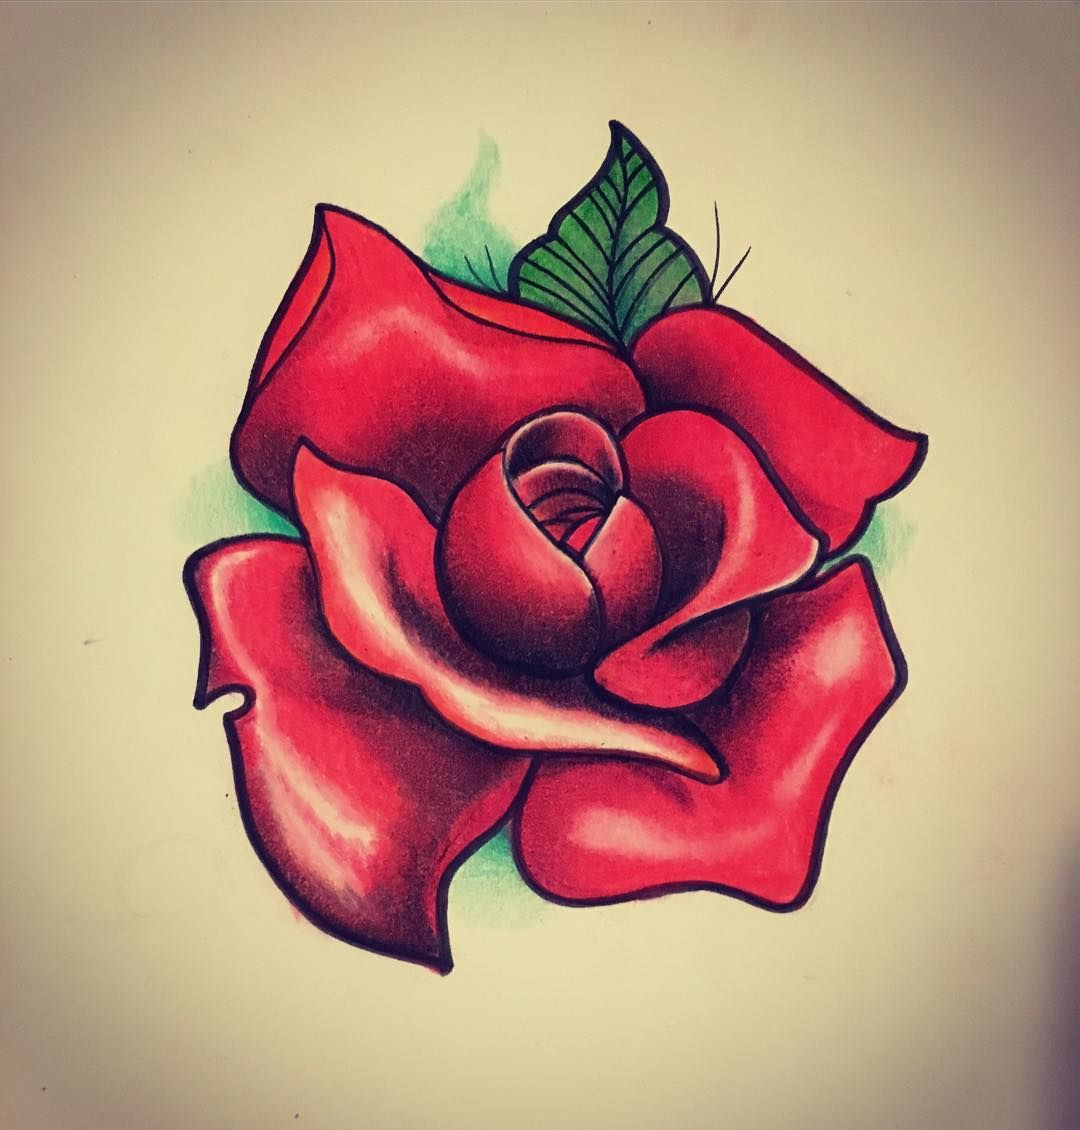 Draw Drawing Desing Color Colors Pastel Sketch Sketching Sketchoftheday Sketchtattoo Tattoo Rose Rosa Rosatattoo Rose Tattoos Rose Sketch Tattoos